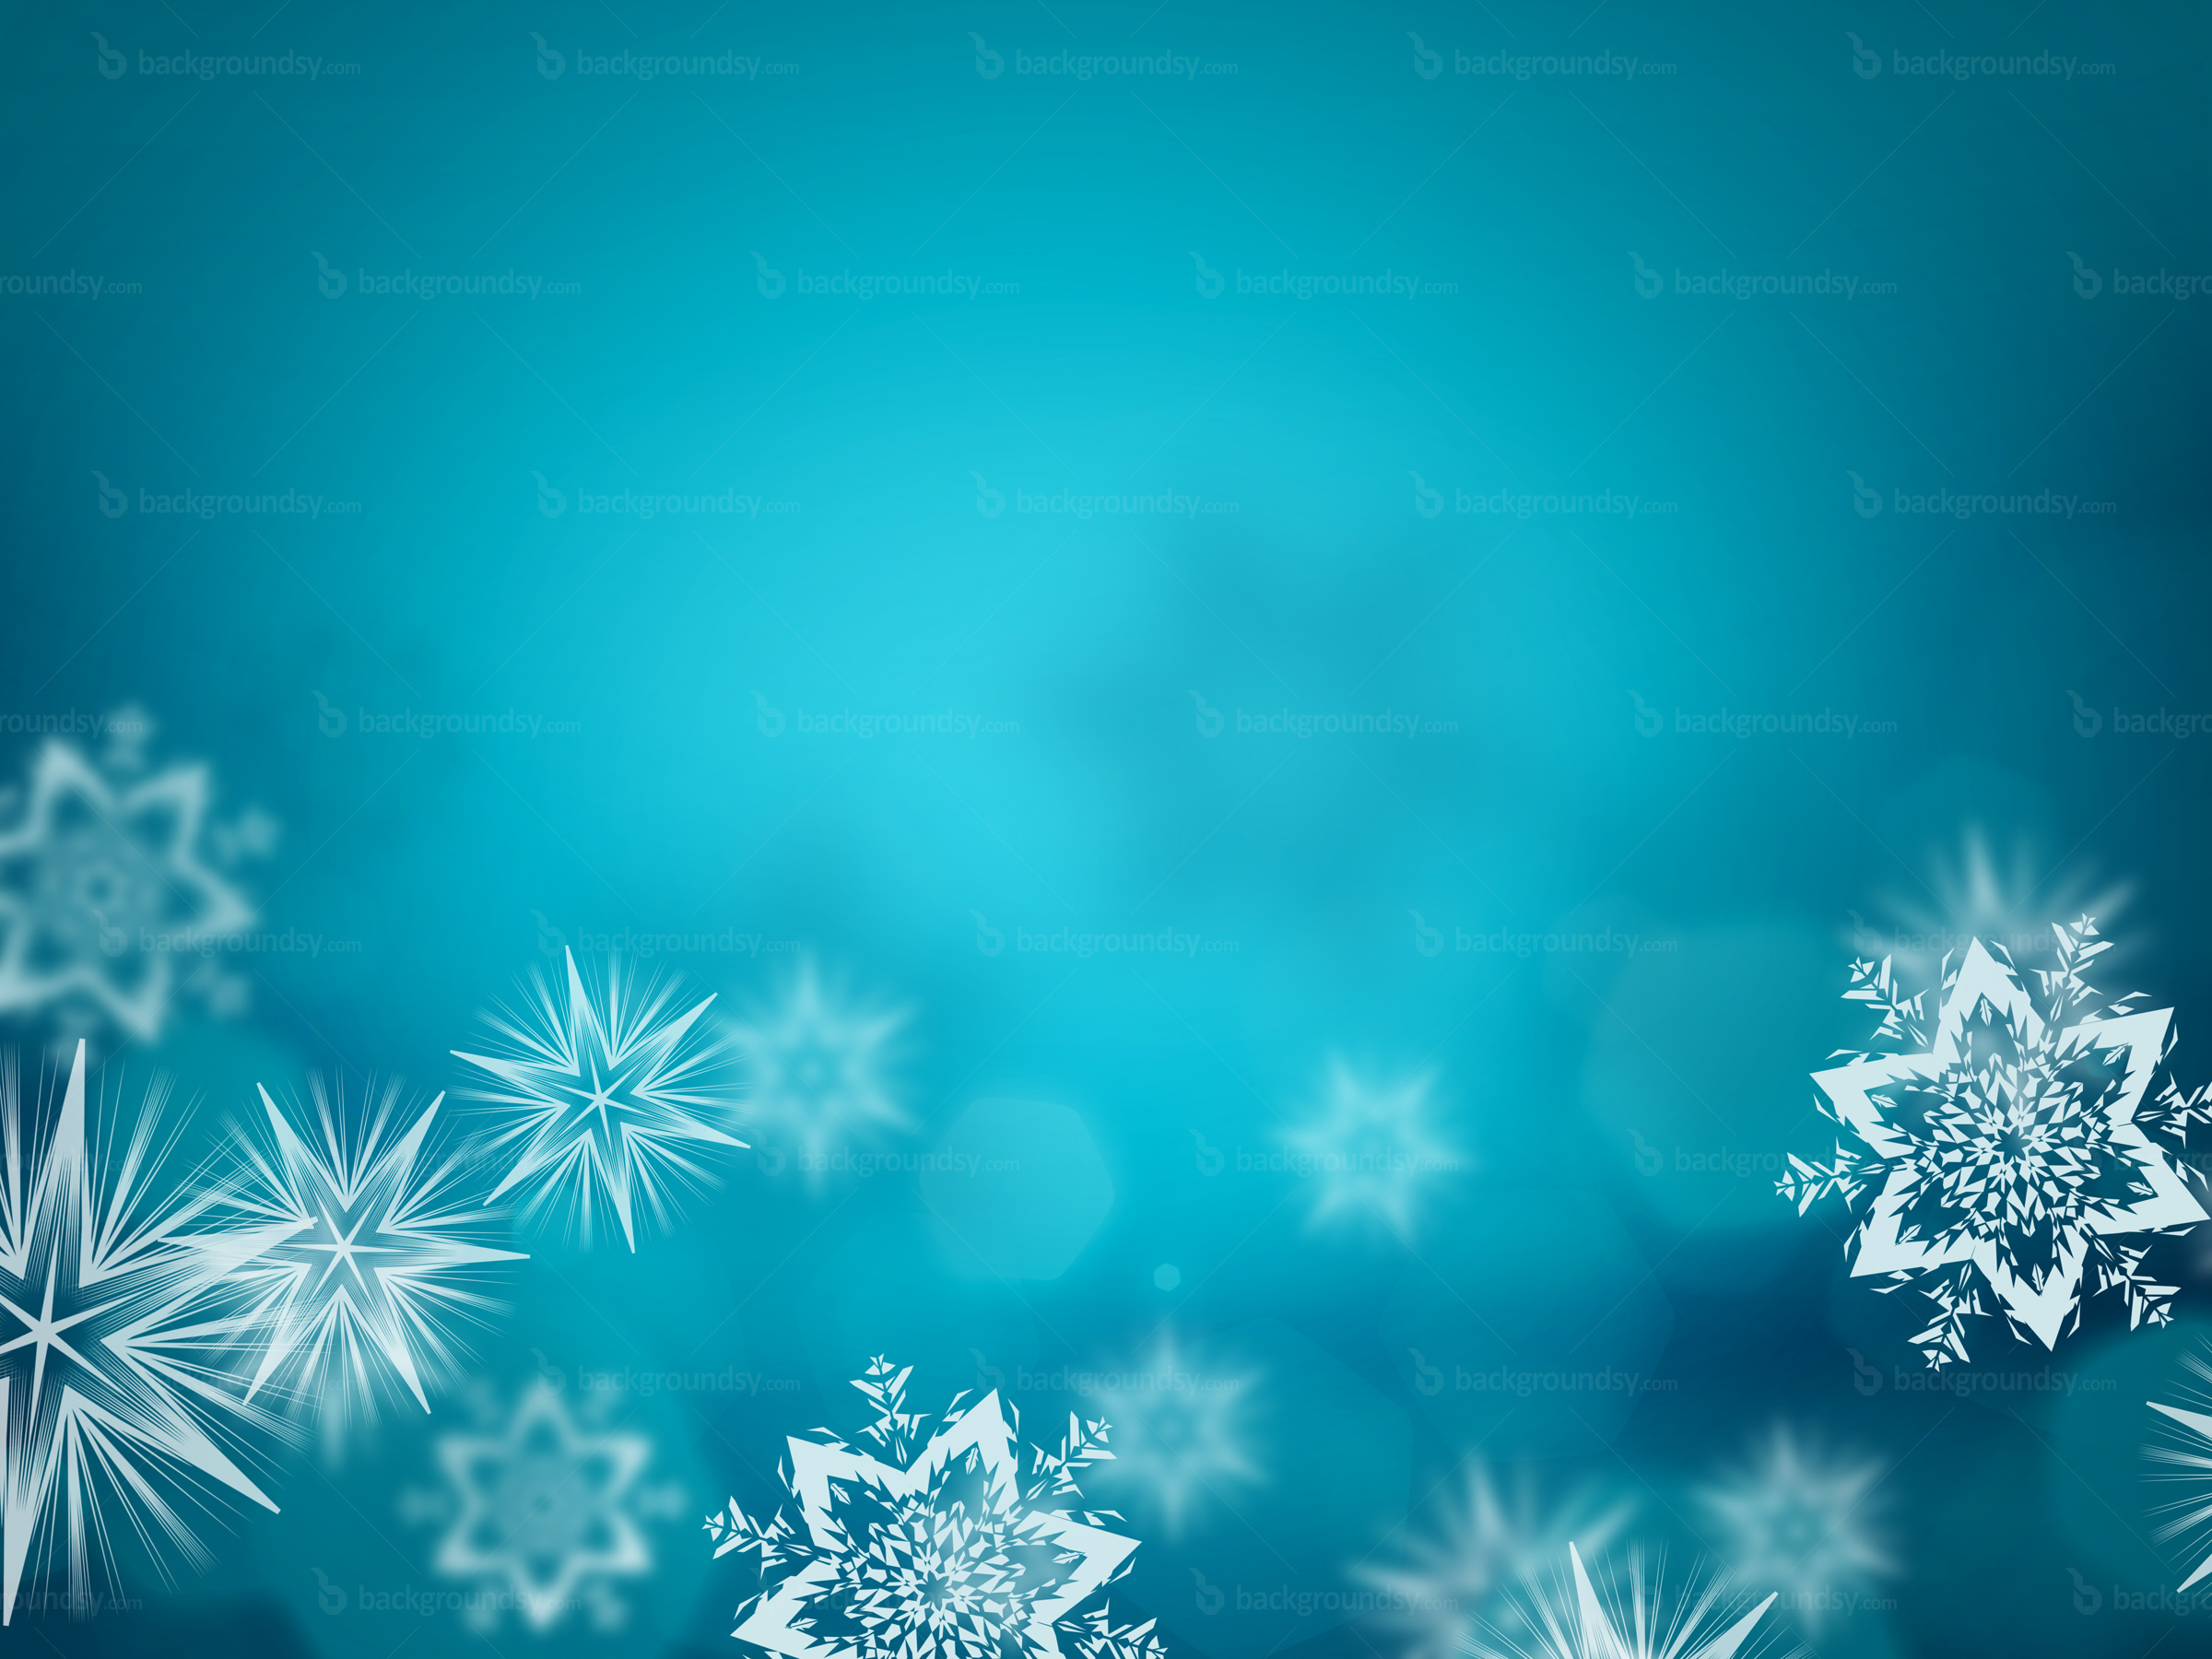 abstract-winter-background.jpg